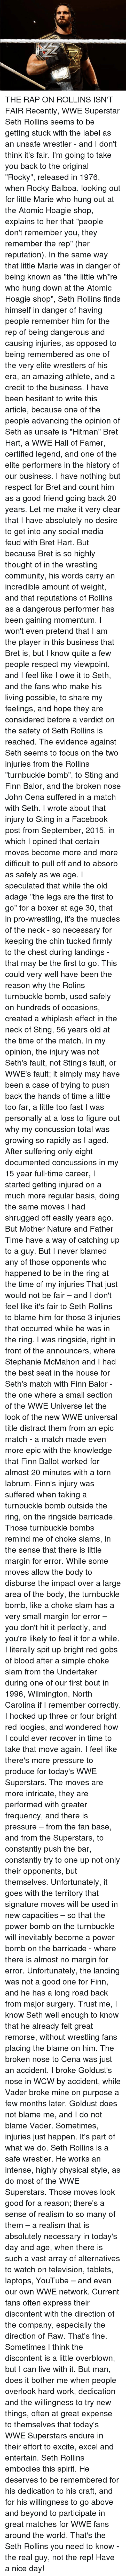 "hock: THE RAP ON ROLLINS ISN'T FAIR  Recently, WWE Superstar Seth Rollins seems to be getting stuck with the label as an unsafe wrestler - and I don't think it's fair. I'm going to take you back to the original ""Rocky"", released in 1976, when Rocky Balboa, looking out for little Marie who hung out at the Atomic Hoagie shop, explains to her that ""people don't remember you, they remember the rep"" (her reputation). In the same way that little Marie was in danger of being known as ""the little wh*re who hung down at the Atomic Hoagie shop"", Seth Rollins finds himself in danger of having people remember him for the rep of being dangerous and causing injuries, as opposed to being remembered as one of the very elite wrestlers of his era, an amazing athlete, and a credit to the business.  I have been hesitant to write this article, because one of the people advancing the opinion of Seth as unsafe is ""Hitman"" Bret Hart, a WWE Hall of Famer, certified legend, and one of the elite performers in the history of our business. I have nothing but respect for Bret and count him as a good friend going back 20 years. Let me make it very clear that I have absolutely no desire to get into any social media feud with Bret Hart. But because Bret is so highly thought of in the wrestling community, his words carry an incredible amount of weight, and that reputations of Rollins as a dangerous performer has been gaining momentum. I won't even pretend that I am the player in this business that Bret is, but I know quite a few people respect my viewpoint, and I feel like I owe it to Seth, and the fans who make his living possible, to share my feelings, and hope they are considered before a verdict on the safety of Seth Rollins is reached.  The evidence against Seth seems to focus on the two injuries from the Rollins ""turnbuckle bomb"", to Sting and Finn Balor, and the broken nose John Cena suffered in a match with Seth. I wrote about that injury to Sting in a Facebook post from September, 2015, in which I opined that certain moves become more and more difficult to pull off and to absorb as safely as we age. I speculated that while the old adage ""the legs are the first to go"" for a boxer at age 30, that in pro-wrestling, it's the muscles of the neck - so necessary for keeping the chin tucked firmly to the chest during landings - that may be the first to go. This could very well have been the reason why the Rolins turnbuckle bomb, used safely on hundreds of occasions, created a whiplash effect in the neck of Sting, 56 years old at the time of the match. In my opinion, the injury was not Seth's fault, not Sting's fault, or WWE's fault; it simply may have been a case of trying to push back the hands of time a little too far, a little too fast  I was personally at a loss to figure out why my concussion total was growing so rapidly as I aged. After suffering only eight documented concussions in my 15 year full-time career, I started getting injured on a much more regular basis, doing the same moves I had shrugged off easily years ago. But Mother Nature and Father Time have a way of catching up to a guy. But I never blamed any of those opponents who happened to be in the ring at the time of my injuries That just would not be fair – and I don't feel like it's fair to Seth Rollins to blame him for those 3 injuries that occurred while he was in the ring.  I was ringside, right in front of the announcers, where Stephanie McMahon and I had the best seat in the house for Seth's match with Finn Balor - the one where a small section of the WWE Universe let the look of the new WWE universal title distract them from an epic match - a match made even more epic with the knowledge that Finn Ballot worked for almost 20 minutes with a torn labrum. Finn's injury was suffered when taking a turnbuckle bomb outside the ring, on the ringside barricade. Those turnbuckle bombs remind me of choke slams, in the sense that there is little margin for error. While some moves allow the body to disburse the impact over a large area of the body, the  turnbuckle bomb, like a choke slam has a very small margin for error – you don't hit it perfectly, and you're likely to feel it for a while. I literally spit up bright red gobs  of blood after a simple choke slam from the Undertaker during one of our first bout in 1996, Wilmington, North Carolina if I remember correctly. I hocked up three or four bright red loogies, and wondered how I could ever recover in time to take that move again.  I feel like there's more pressure to produce for today's WWE Superstars. The moves are more intricate, they are performed with greater frequency, and there is pressure – from the fan base, and from the Superstars, to constantly push the bar, constantly try to one up not only their opponents, but themselves. Unfortunately, it goes with the territory that signature moves will be used in new capacities – so that the power bomb on the turnbuckle will inevitably become a power bomb on the barricade - where there is almost no margin for error. Unfortunately, the landing was not a good one for Finn, and he has a long road back from major surgery. Trust me, I know Seth well enough to know that he already felt great remorse, without wrestling fans placing the blame on him.  The broken nose to Cena was just an accident. I broke Goldust's nose in WCW by accident, while Vader broke mine on purpose a few months later. Goldust does not blame me, and I do not blame Vader.   Sometimes, injuries just happen. It's part of what we do. Seth Rollins is a safe wrestler. He works an intense, highly physical style, as do most of the WWE Superstars. Those moves look good for a reason; there's a sense of realism to so many of them – a realism that is absolutely necessary in today's day and age, when there is such a vast array of alternatives to watch on television, tablets, laptops, YouTube – and even our own WWE network. Current fans often express their discontent with the direction of the company, especially the direction of Raw. That's fine. Sometimes I think the discontent is a little overblown, but I can live with it. But man, does it bother me when people overlook hard work, dedication and the willingness to try new things, often at great expense to themselves that today's WWE Superstars endure in their effort to excite, excel and entertain. Seth Rollins embodies this spirit. He deserves to be remembered for his dedication to his craft, and for his willingness to go above and beyond to participate in great matches for WWE fans around the world. That's the Seth Rollins you need to know - the real guy, not the rep!  Have a nice day!"